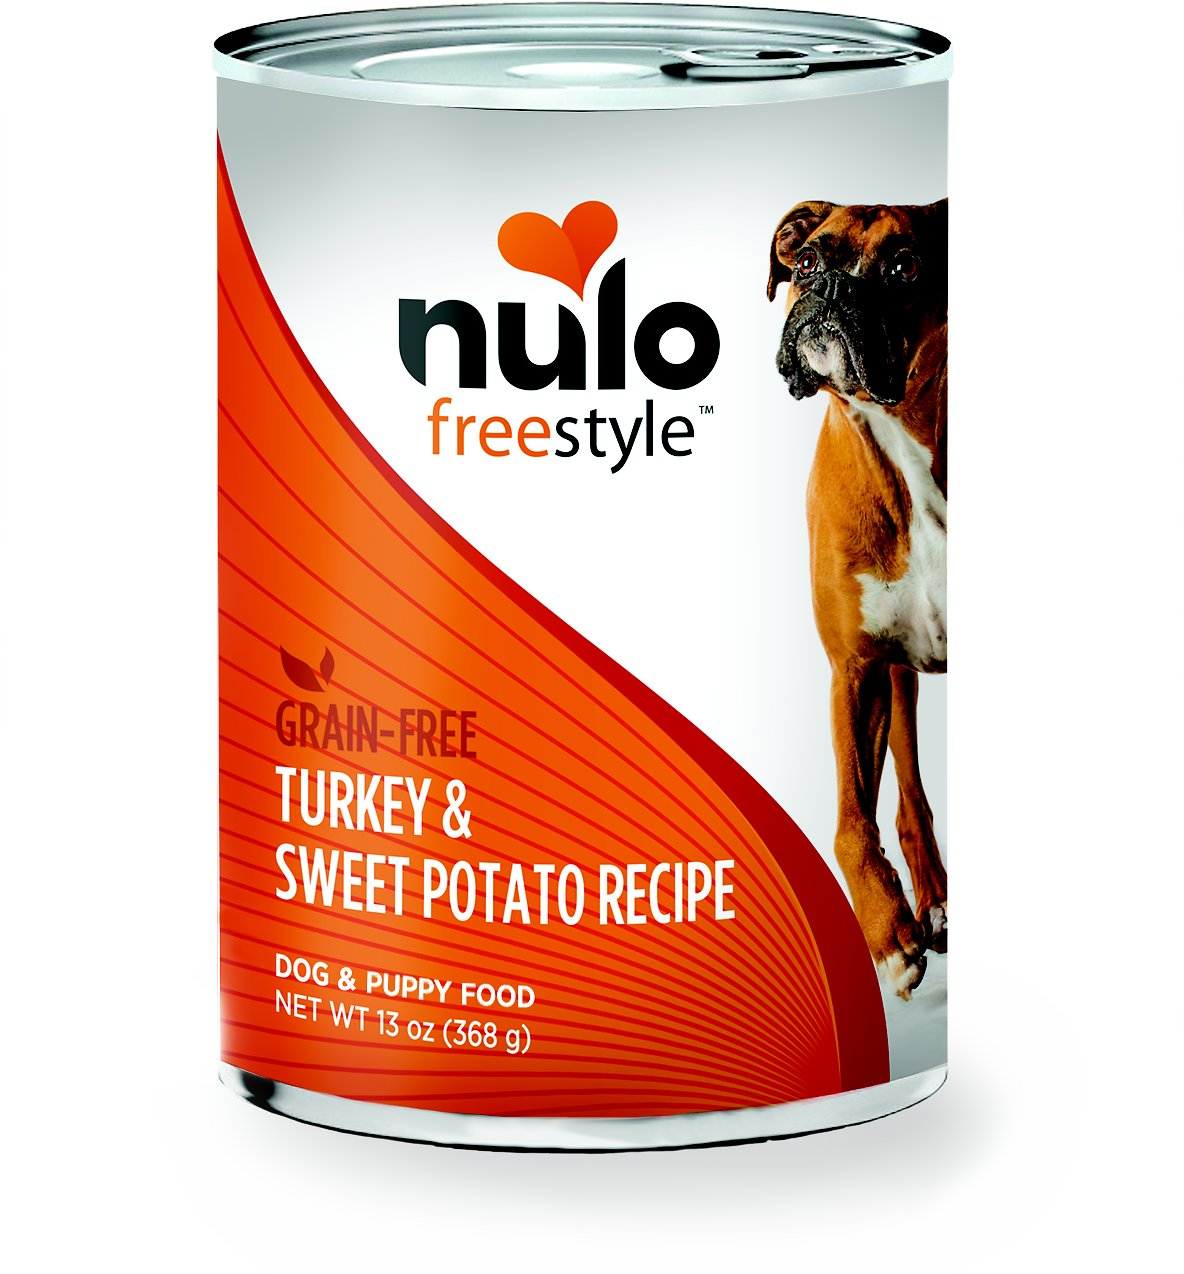 Nulo Dog Freestyle Pate Turkey & Sweet Potato Recipe Grain-Free Canned Dog Food, 13-oz